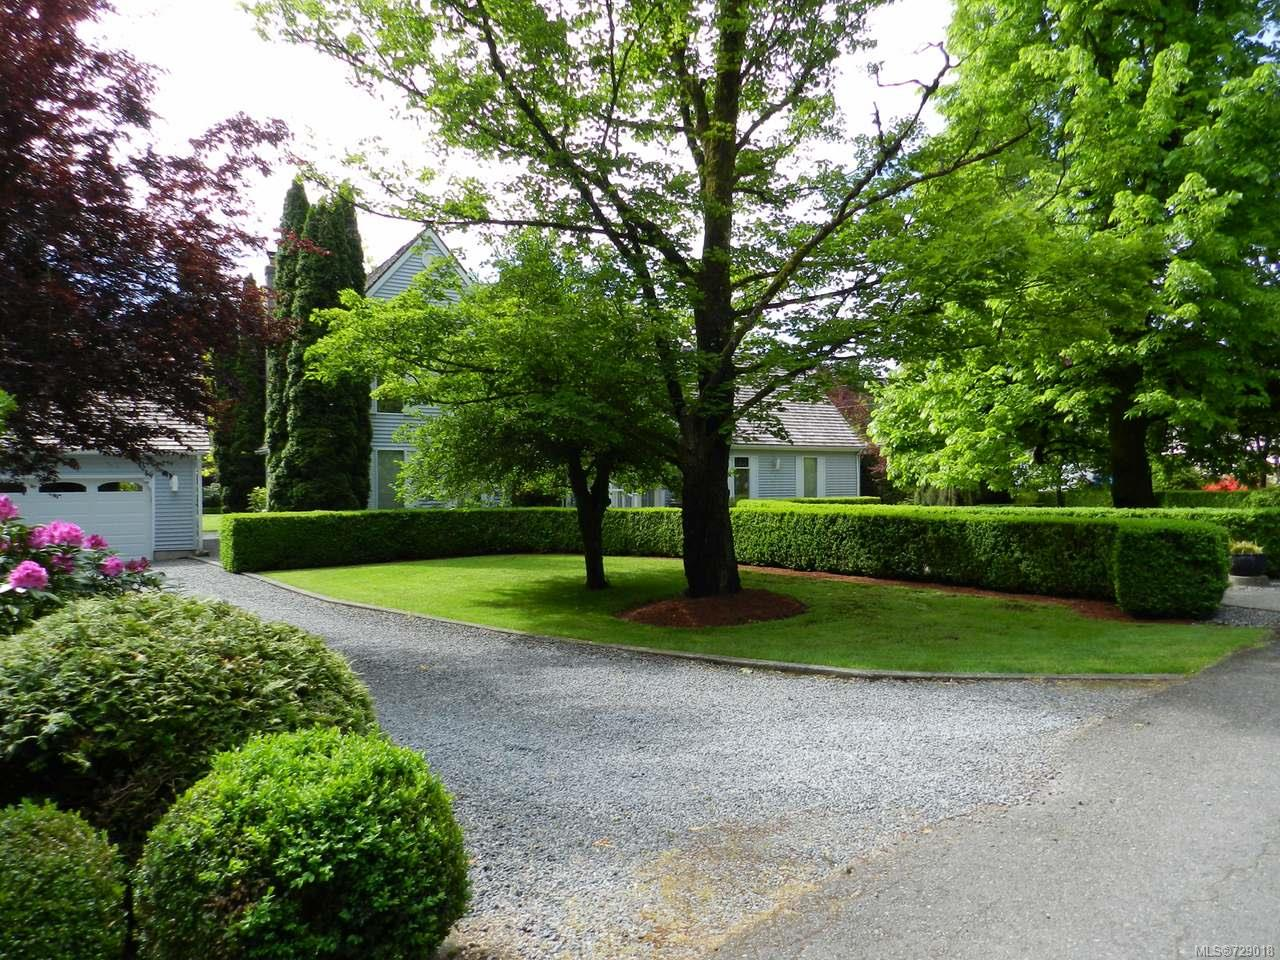 FEATURED LISTING: 4749 FAIRBRIDGE DRIVE DUNCAN